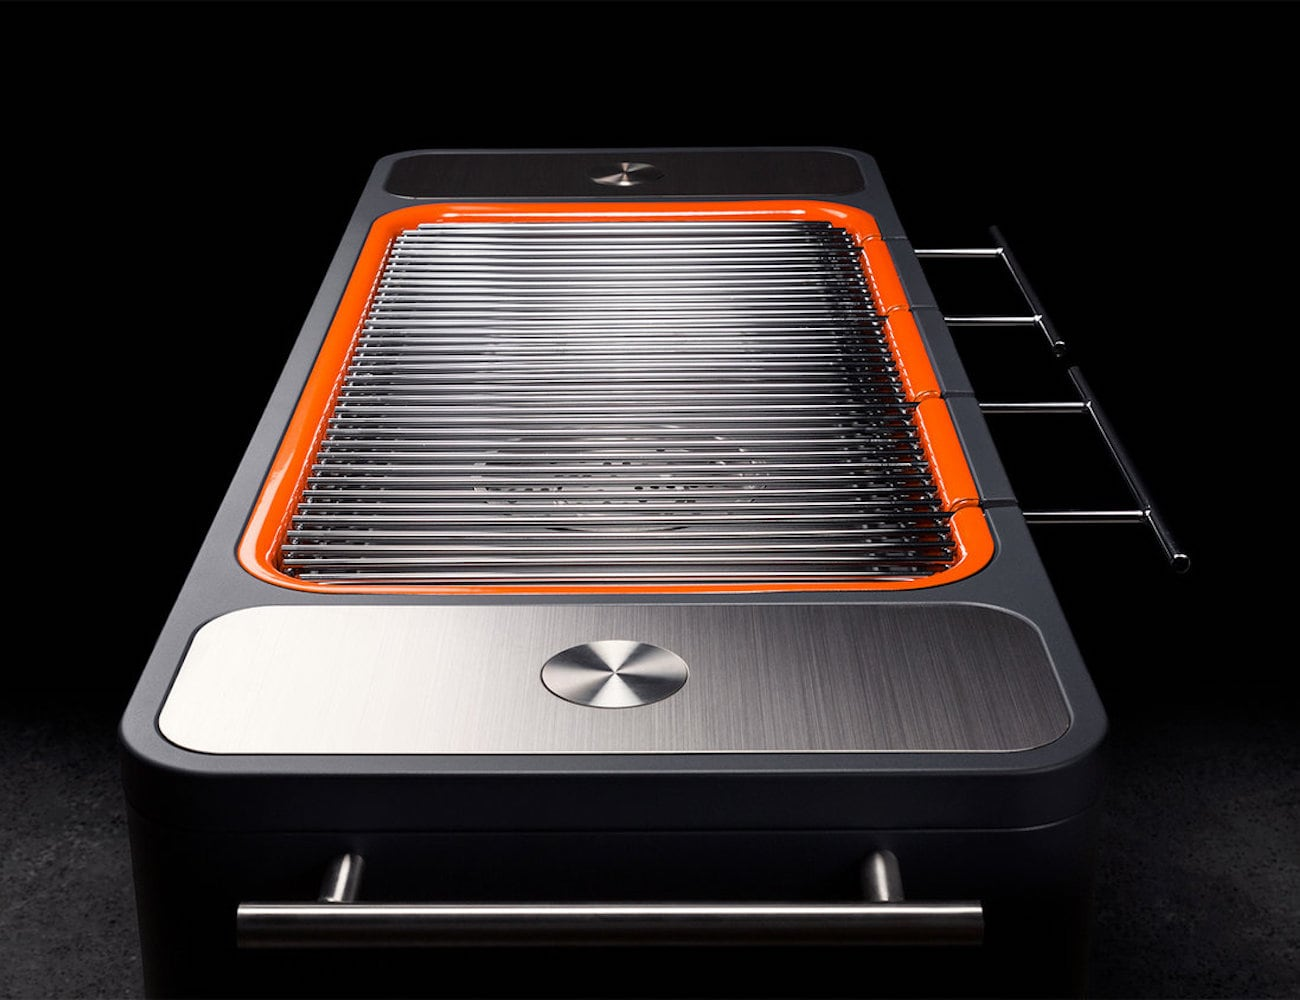 Everdure Fusion Charcoal Electric Ignition Barbeque